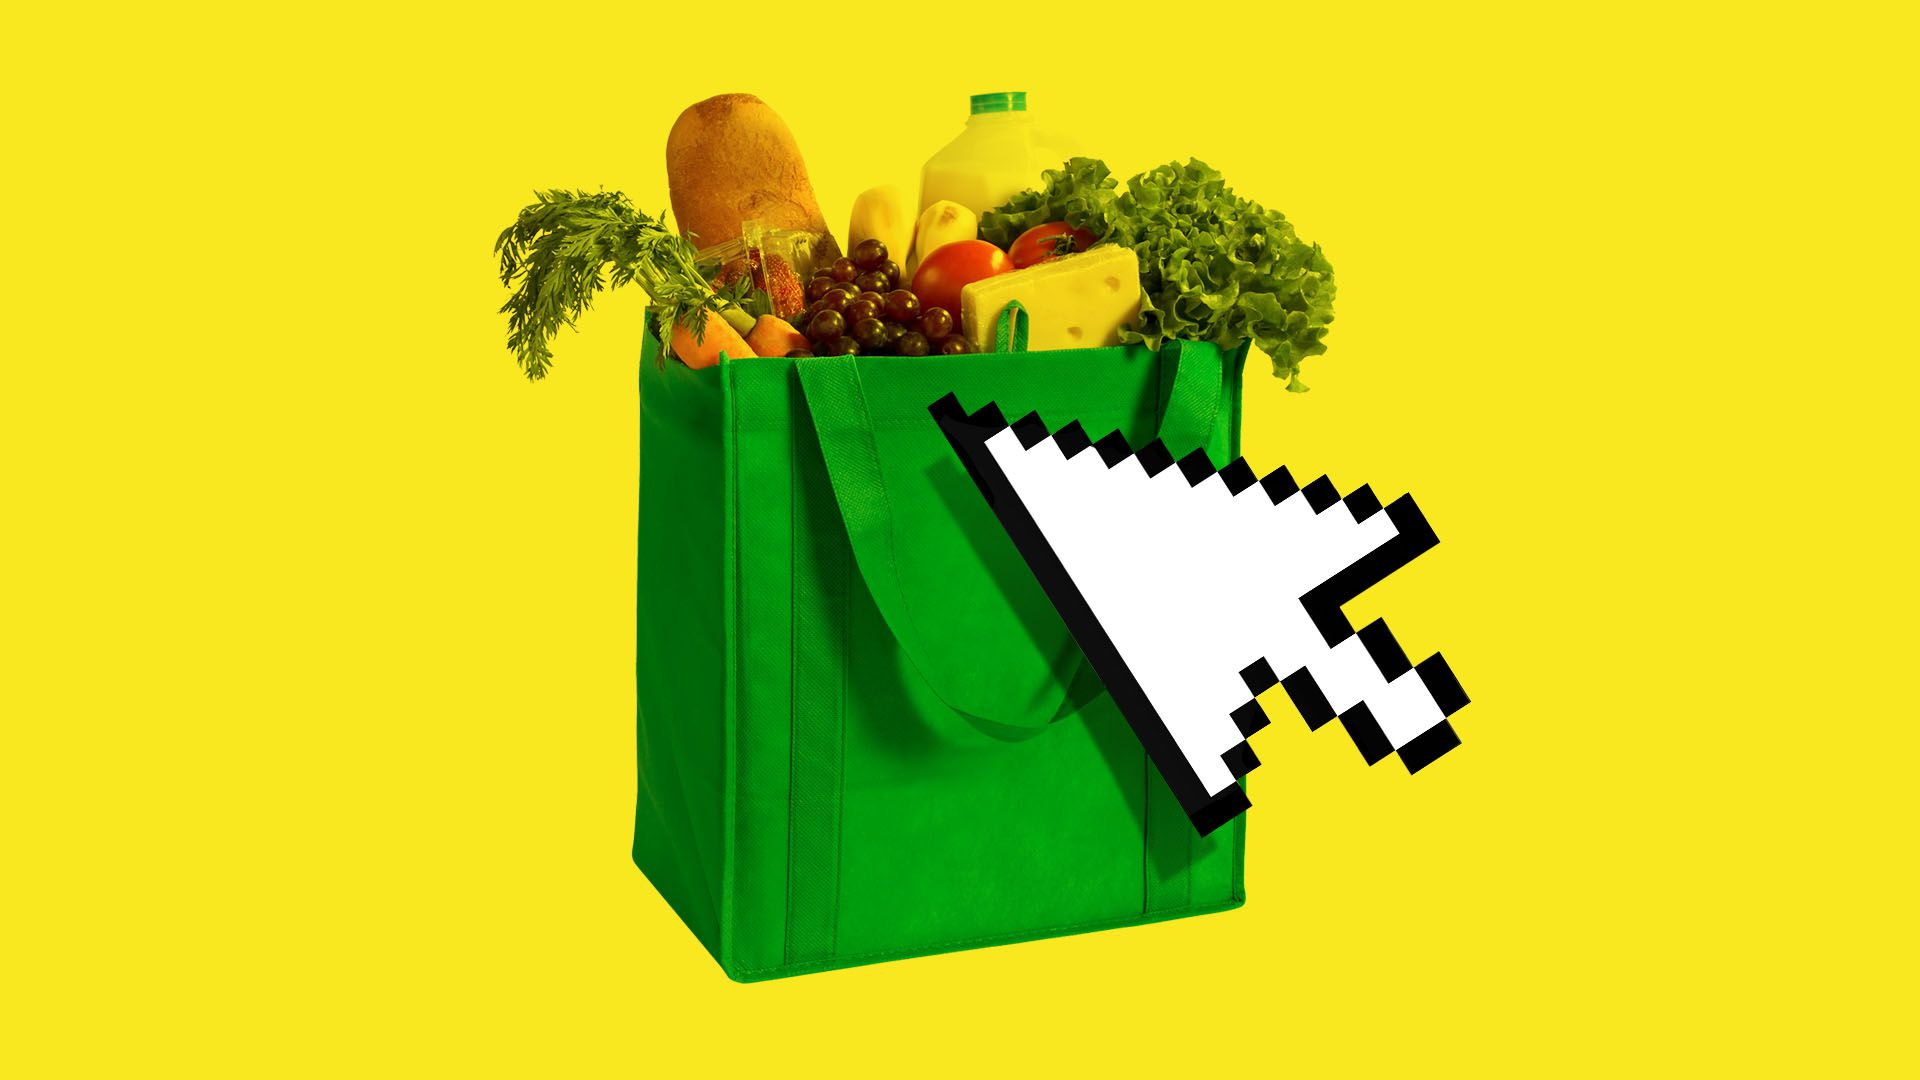 In this illustration, a large digital mouse clicks on a bag of groceries